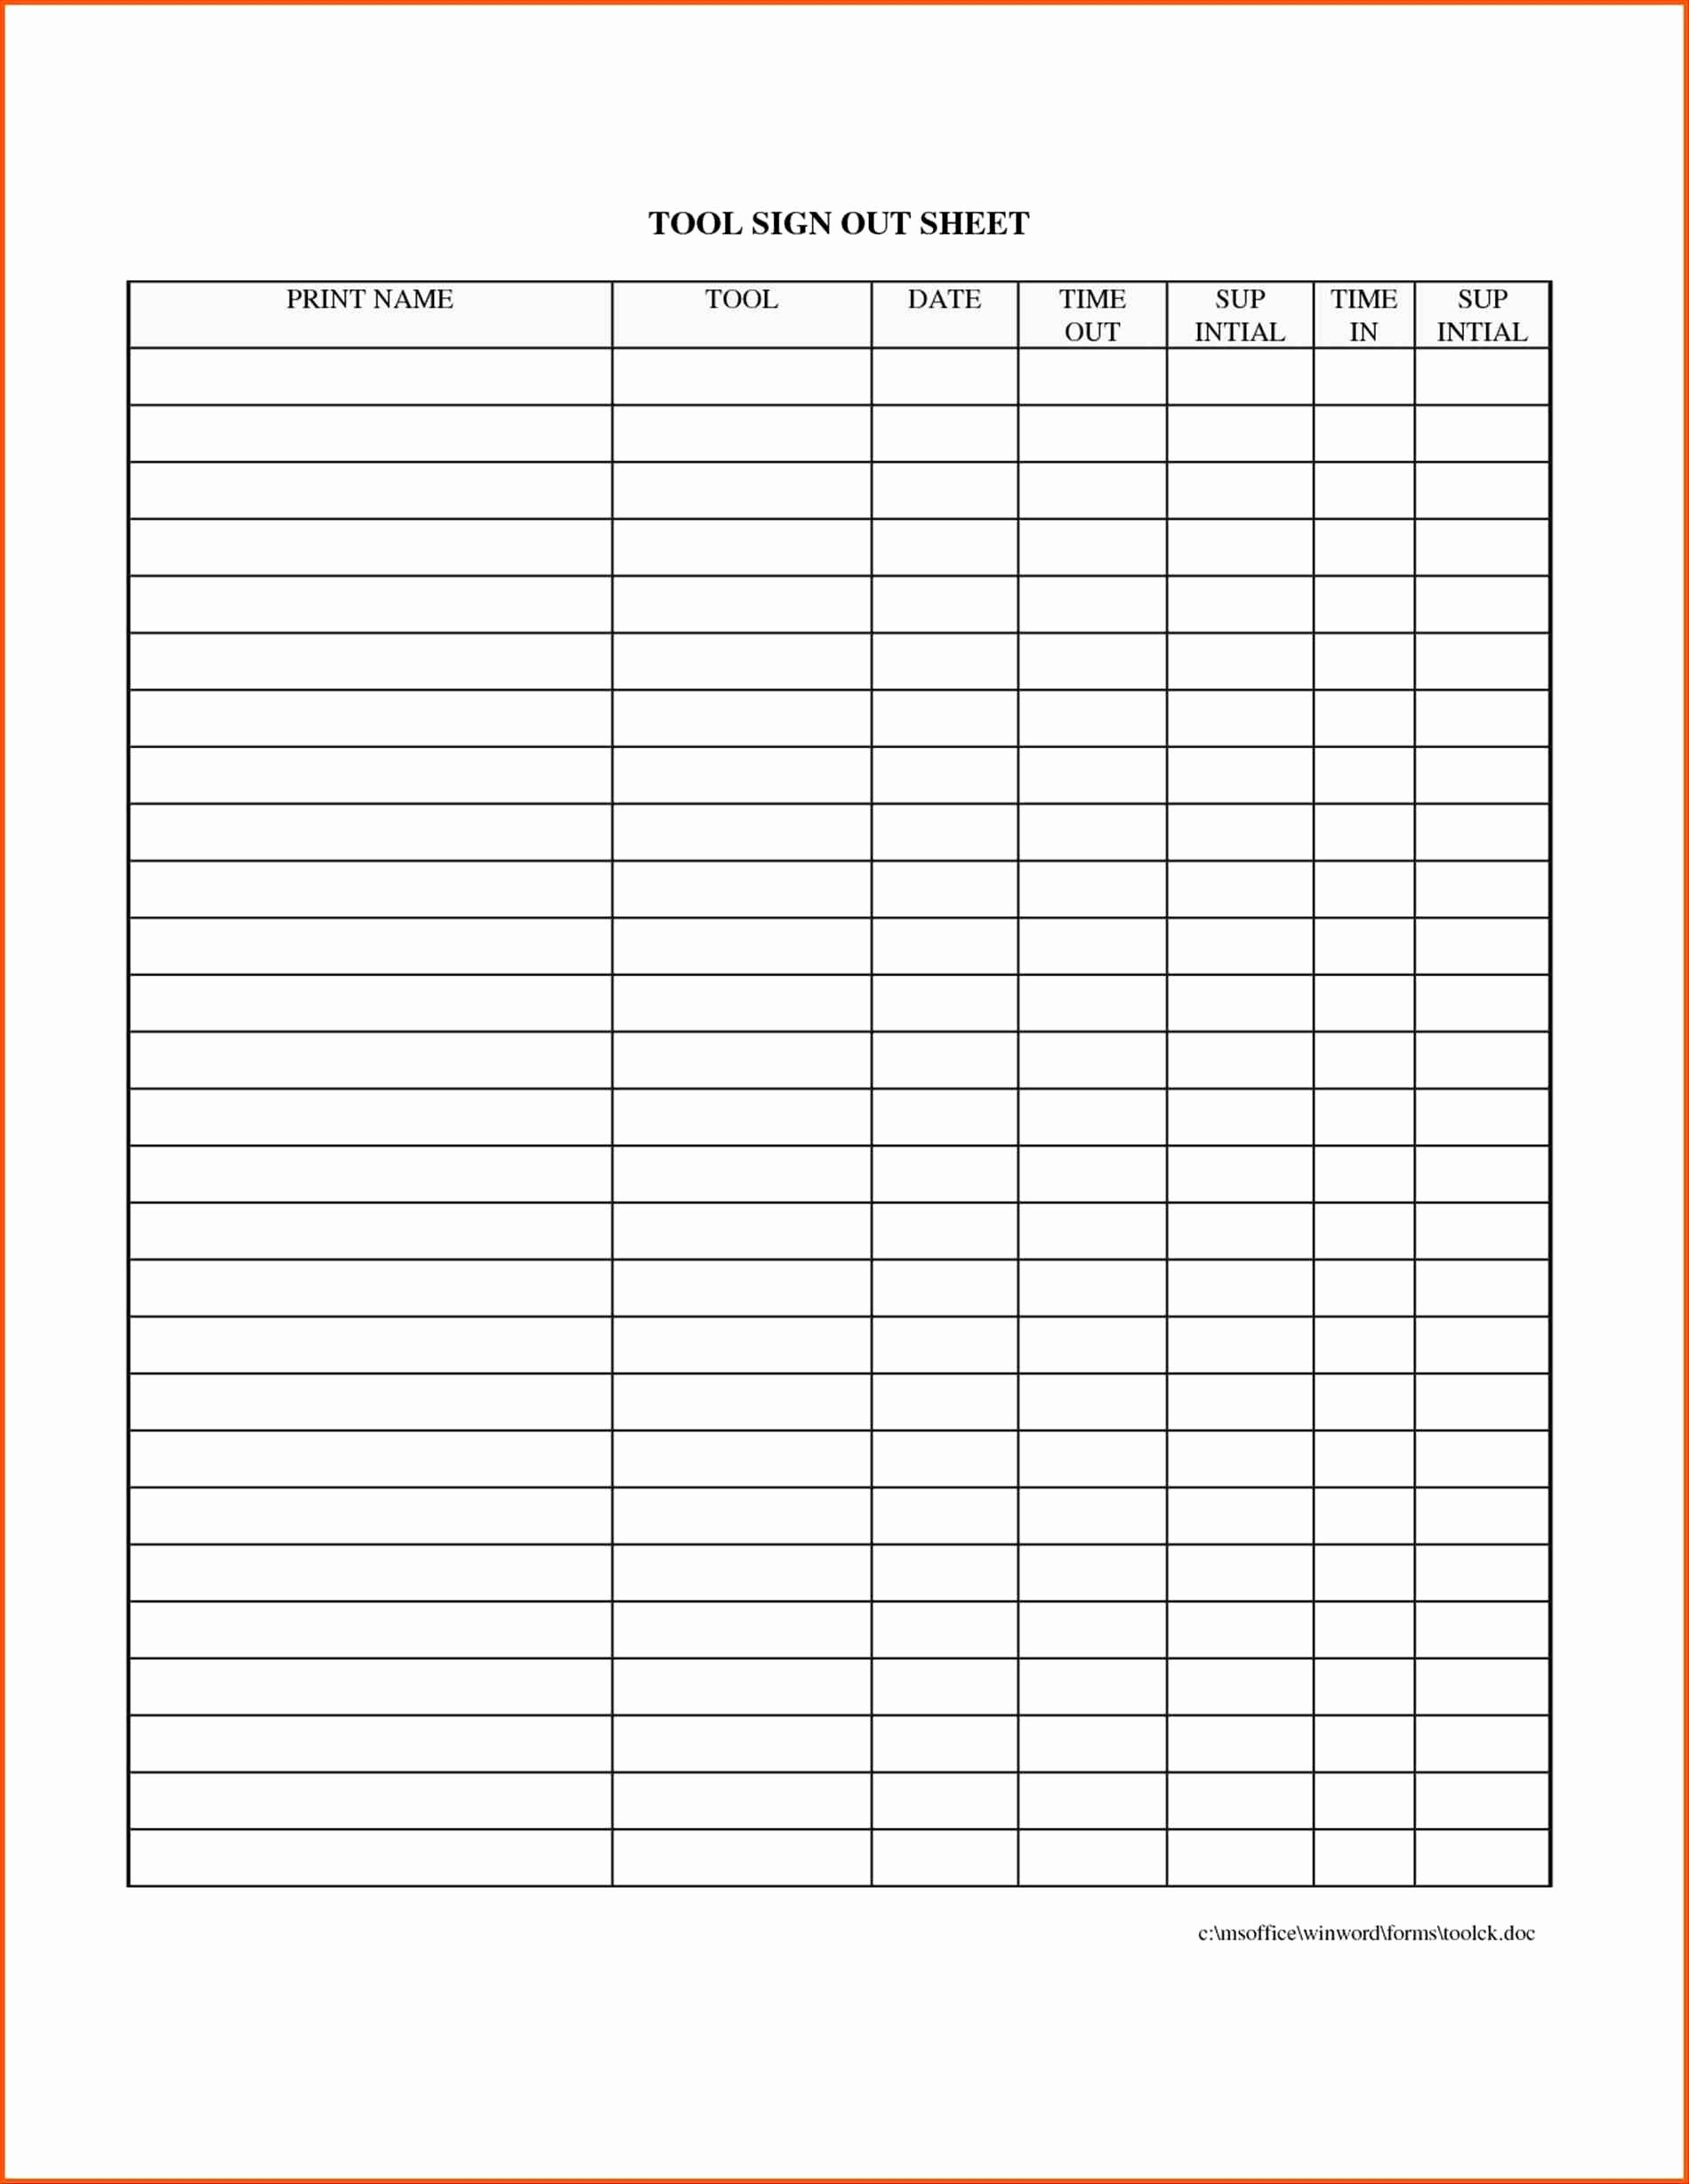 Image Result For Free Tool Room Sign Out Sheet